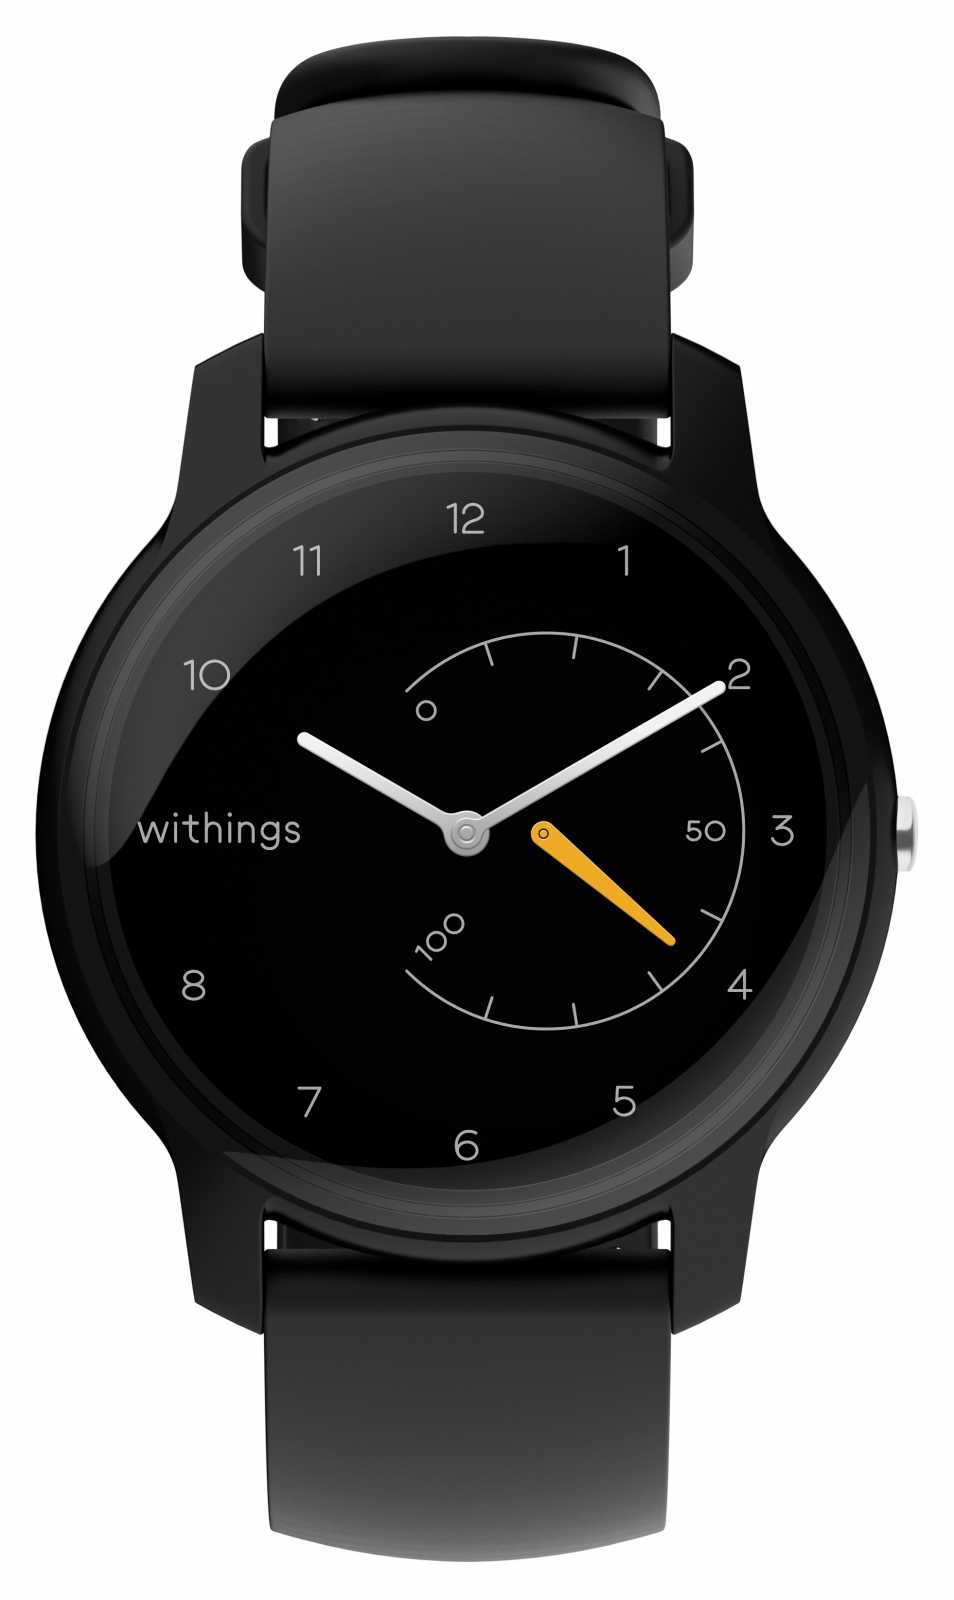 Withings-Move-aktiivsusmonitor-kaekell.jpg